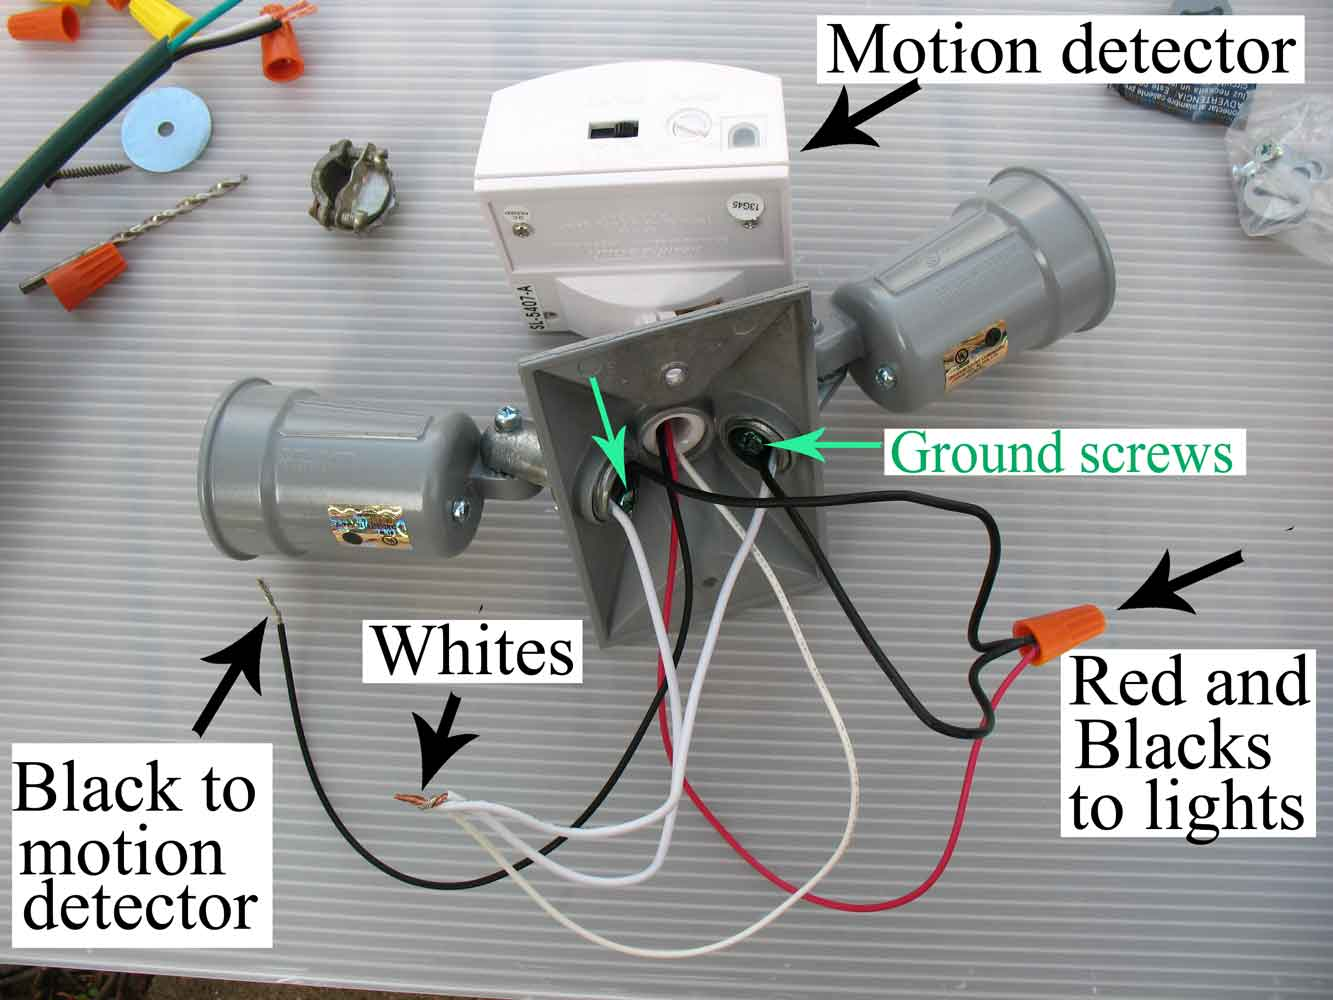 IMG_0014 Motion detector?resize=665%2C499 motion sensor flood light wiring diagram wiring diagram Motion Sensing Light Schematic at soozxer.org